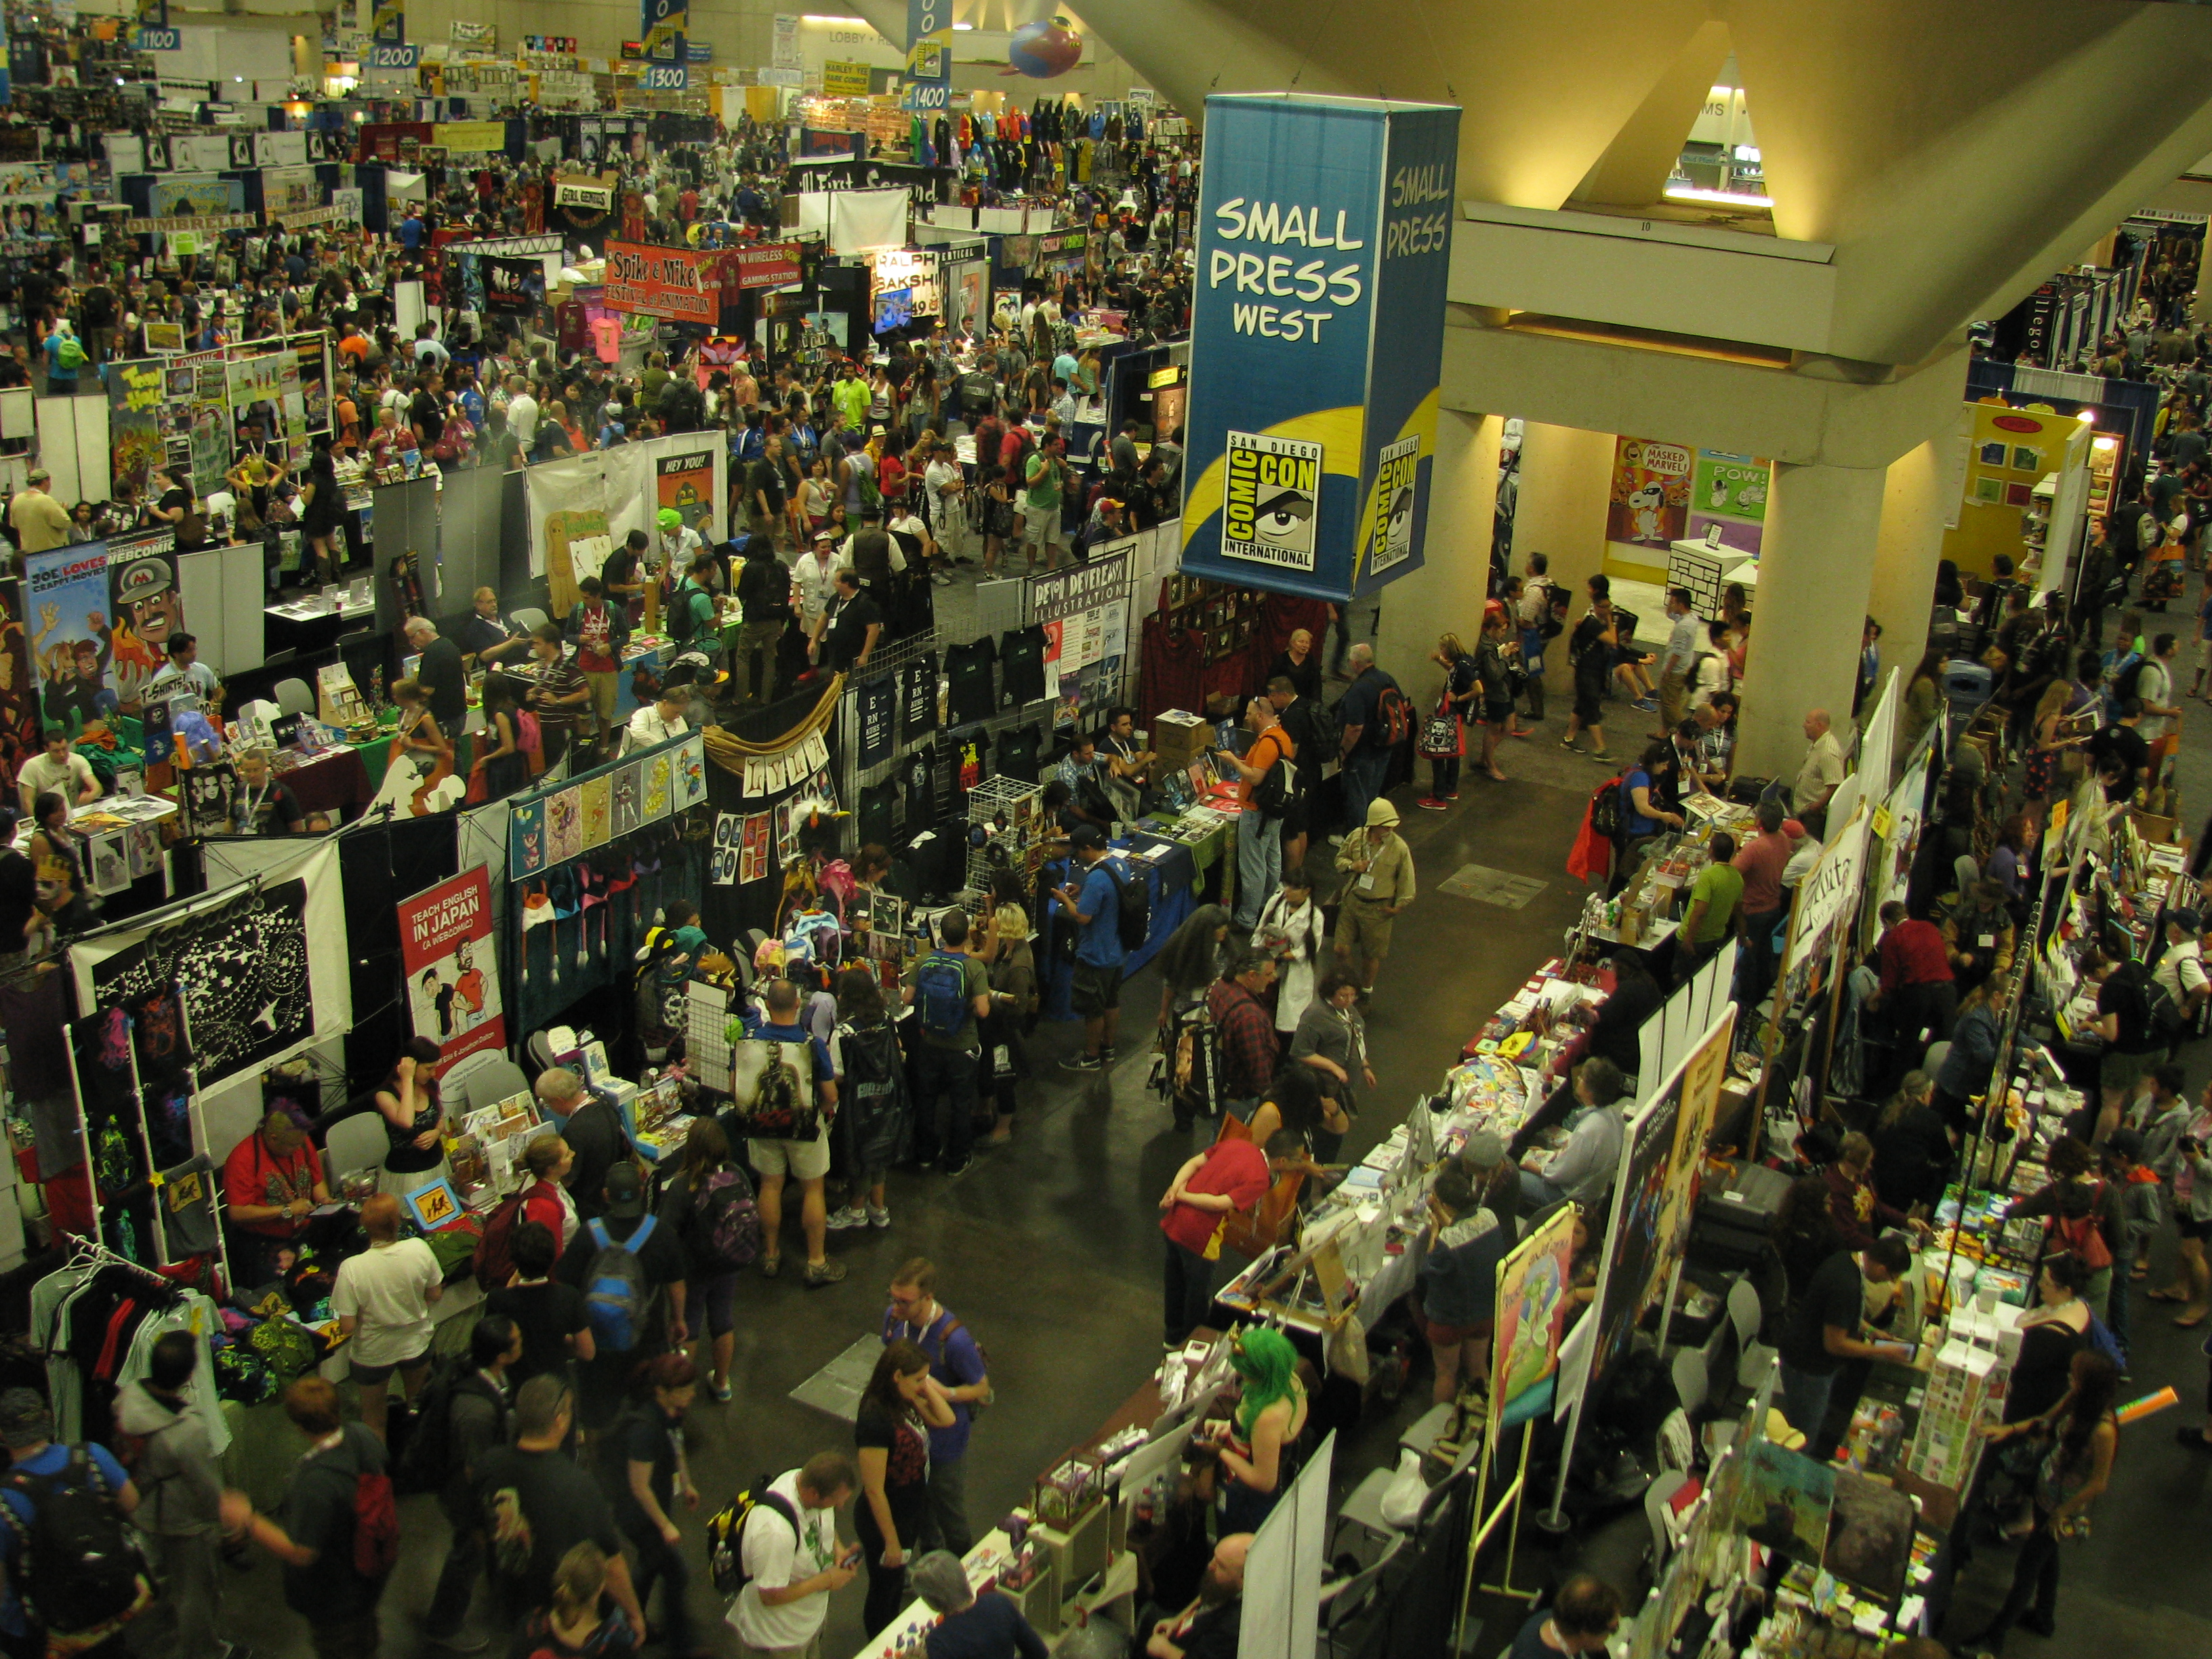 File:SDCC - Exhibit Hall B (9348034032).jpg - Wikimedia Commons